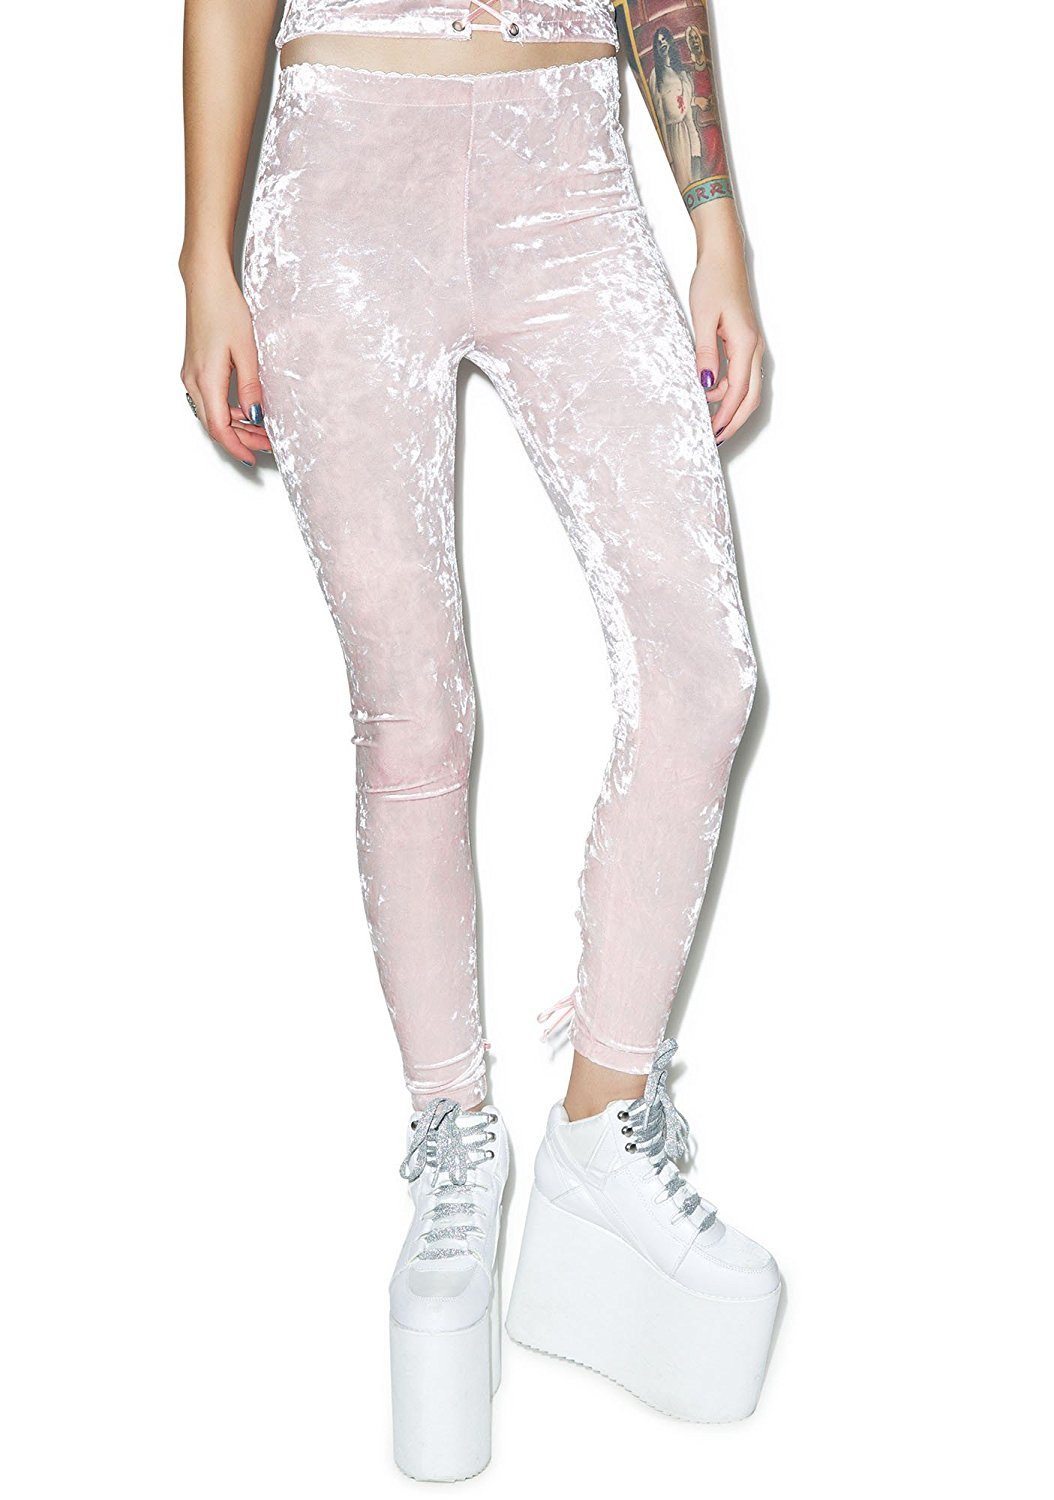 209008be4dc Get Quotations · Lip Service Gothic EMO Lace Up Crushed Velvet Pink Leggings